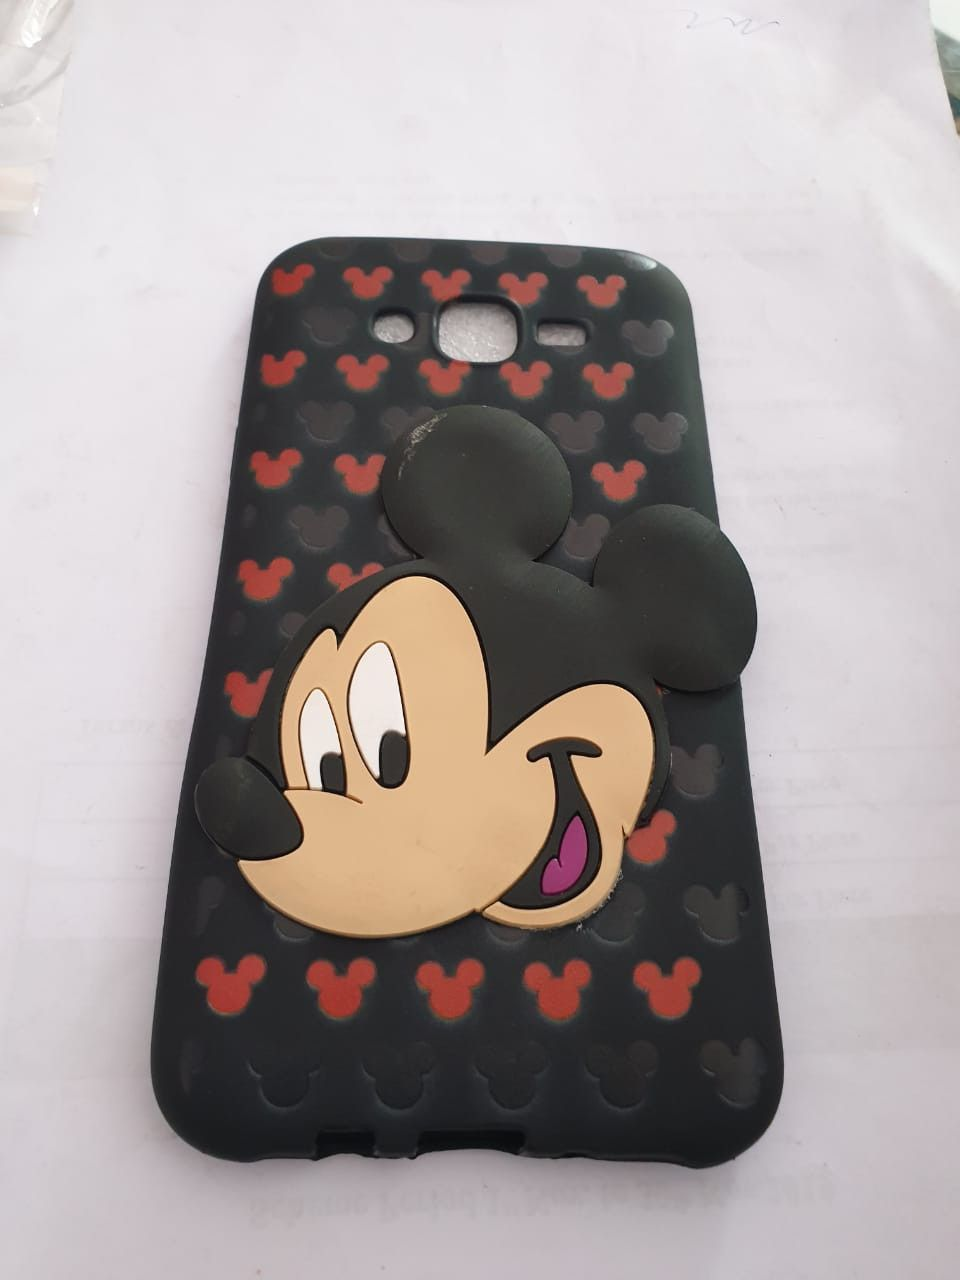 Mobile Case Mobile Cases Case Phone Cases